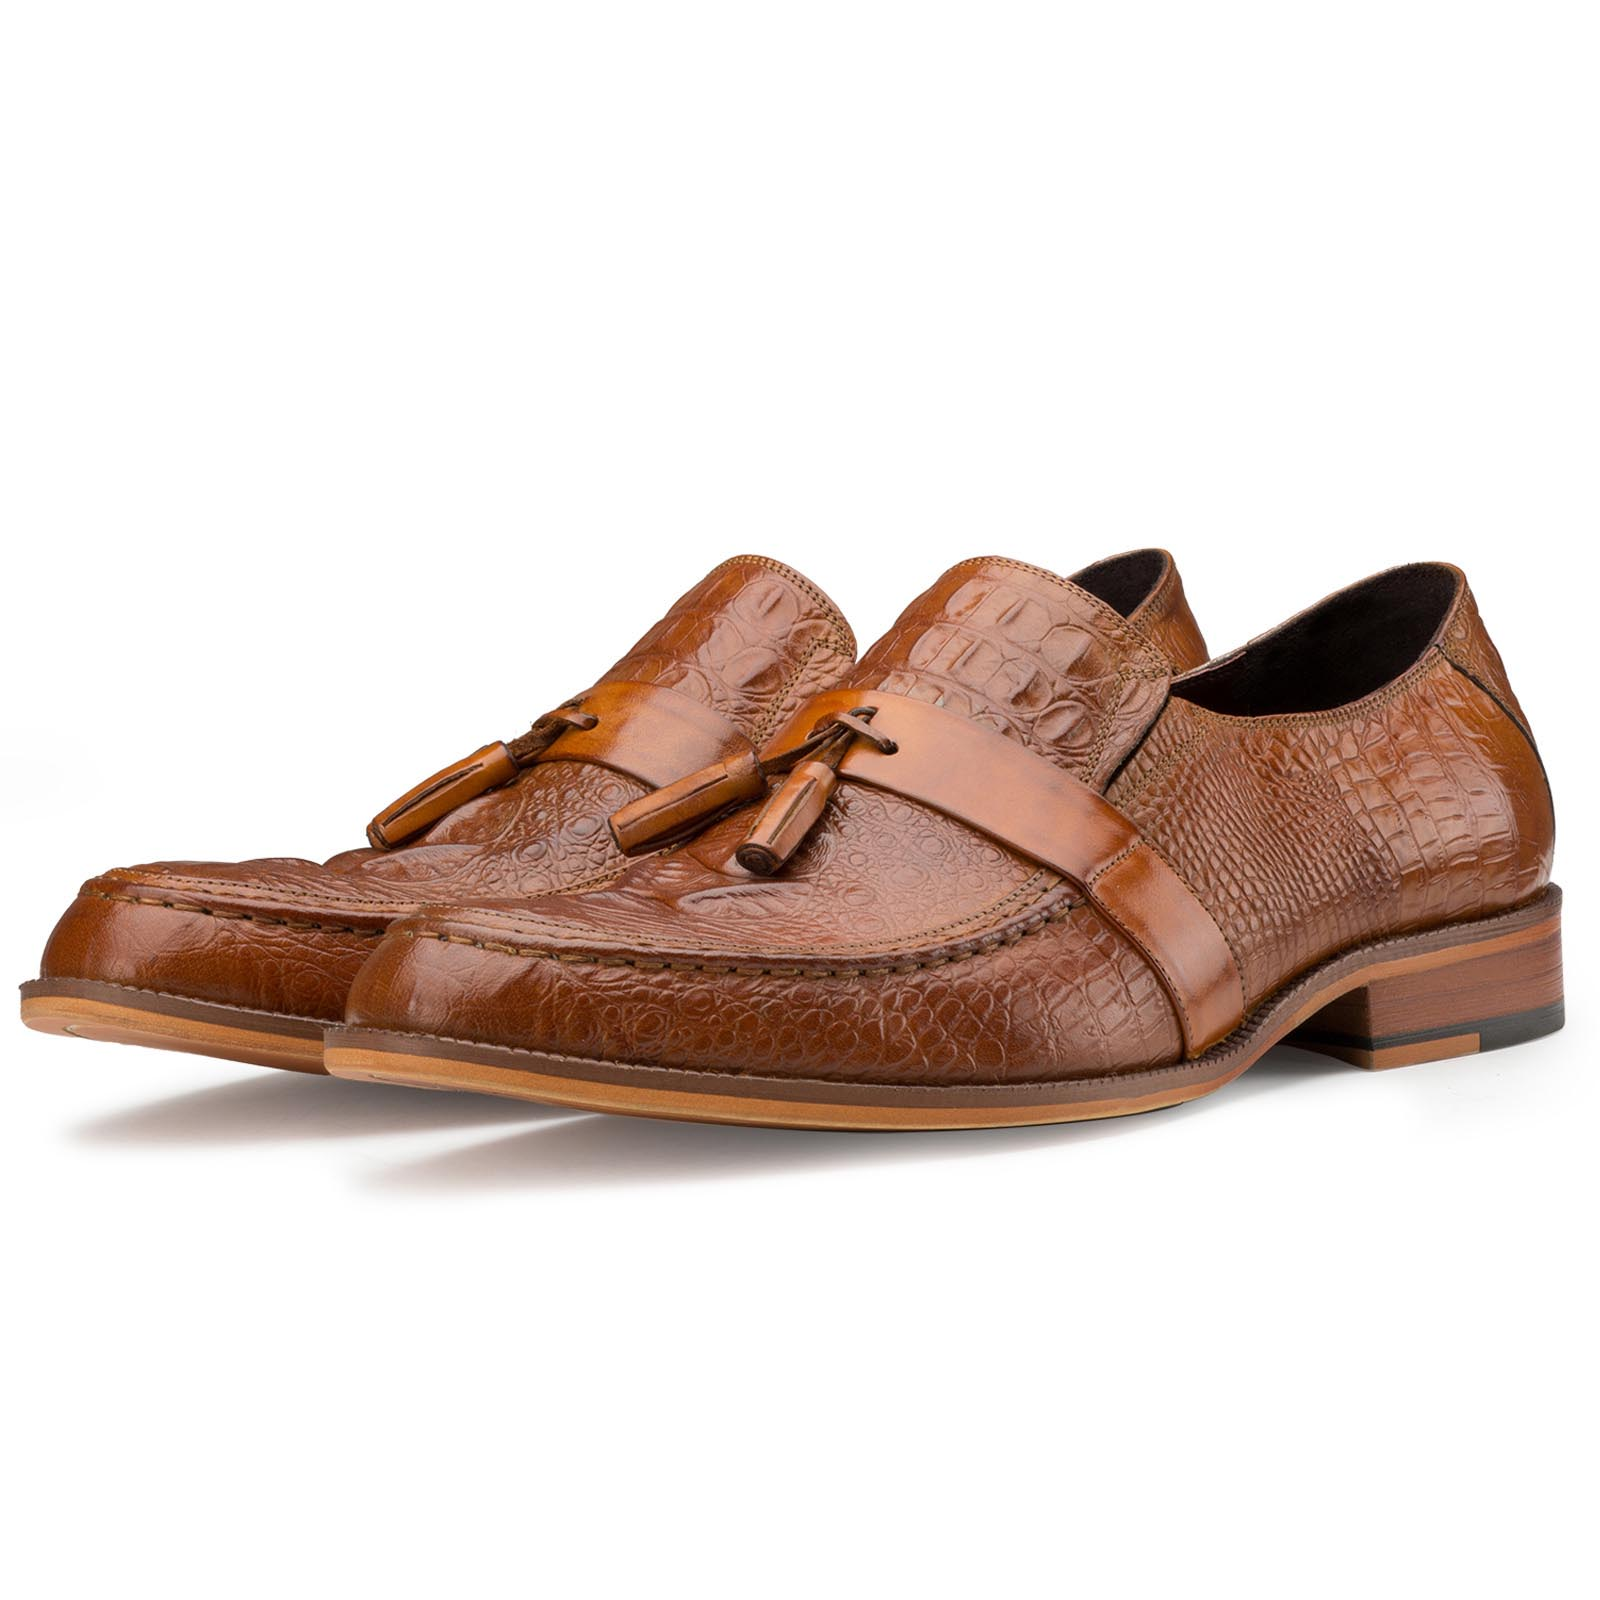 Tan Croc-Textured Tassel Loafers